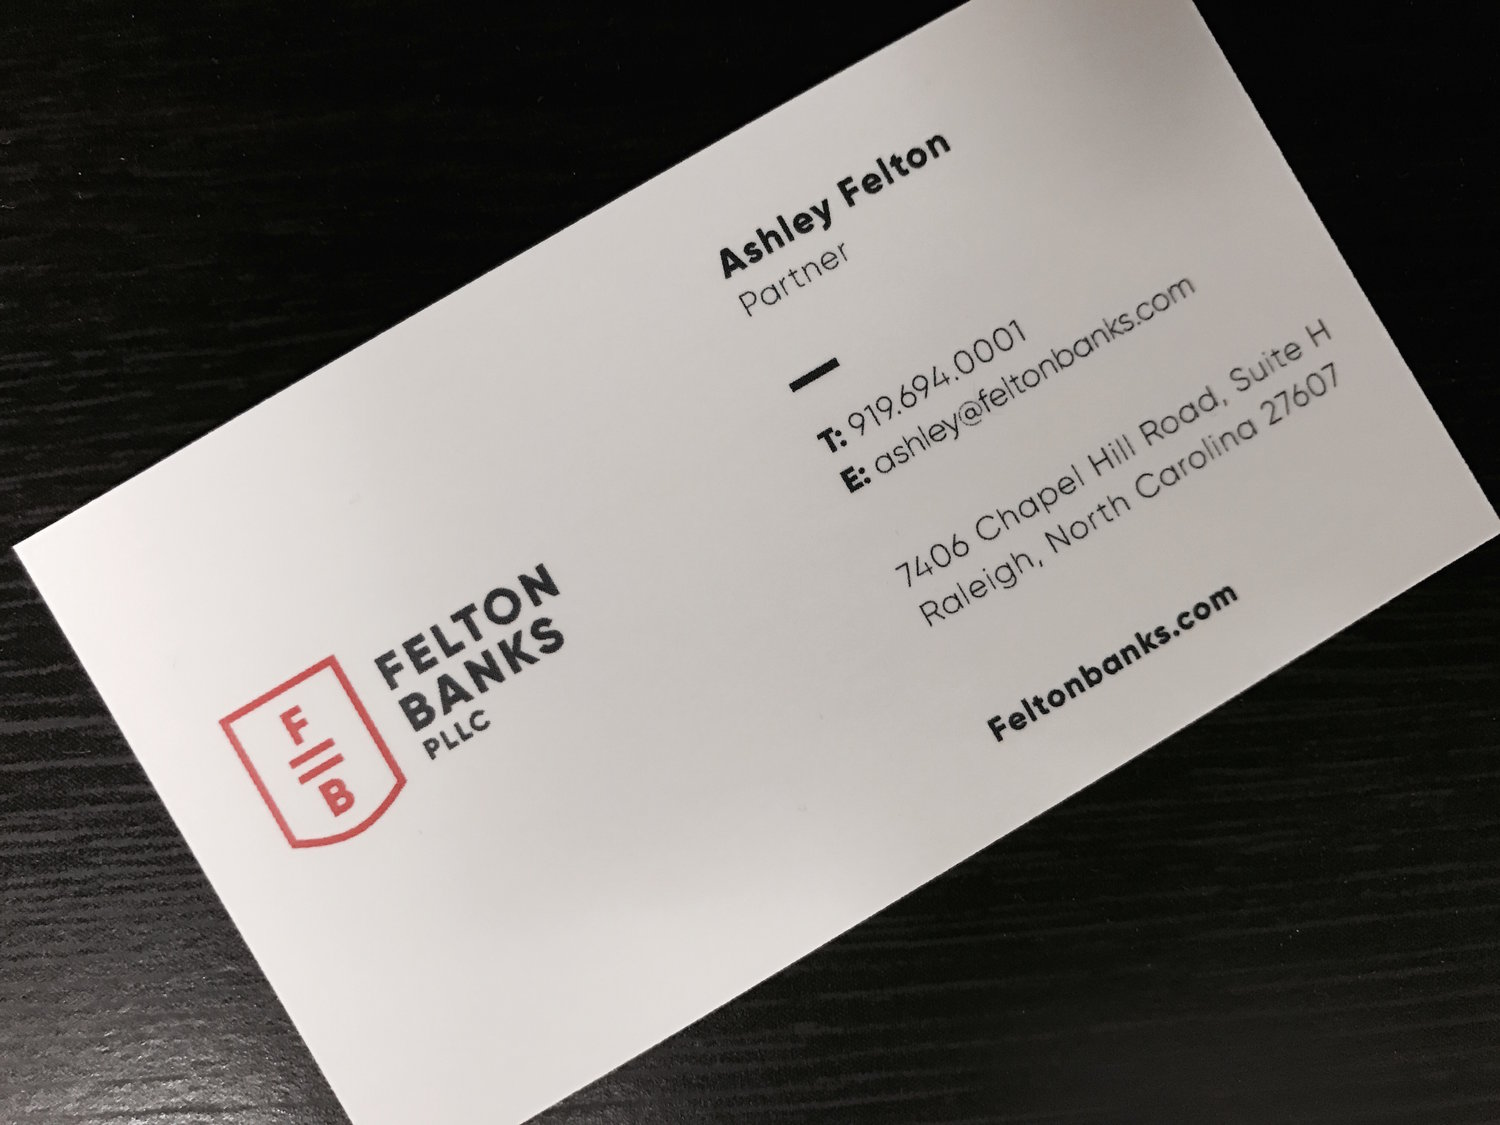 Business card printing raleigh images card design and card template business cards printing raleigh nc image collections card design cheap business cards raleigh nc image collections reheart Image collections